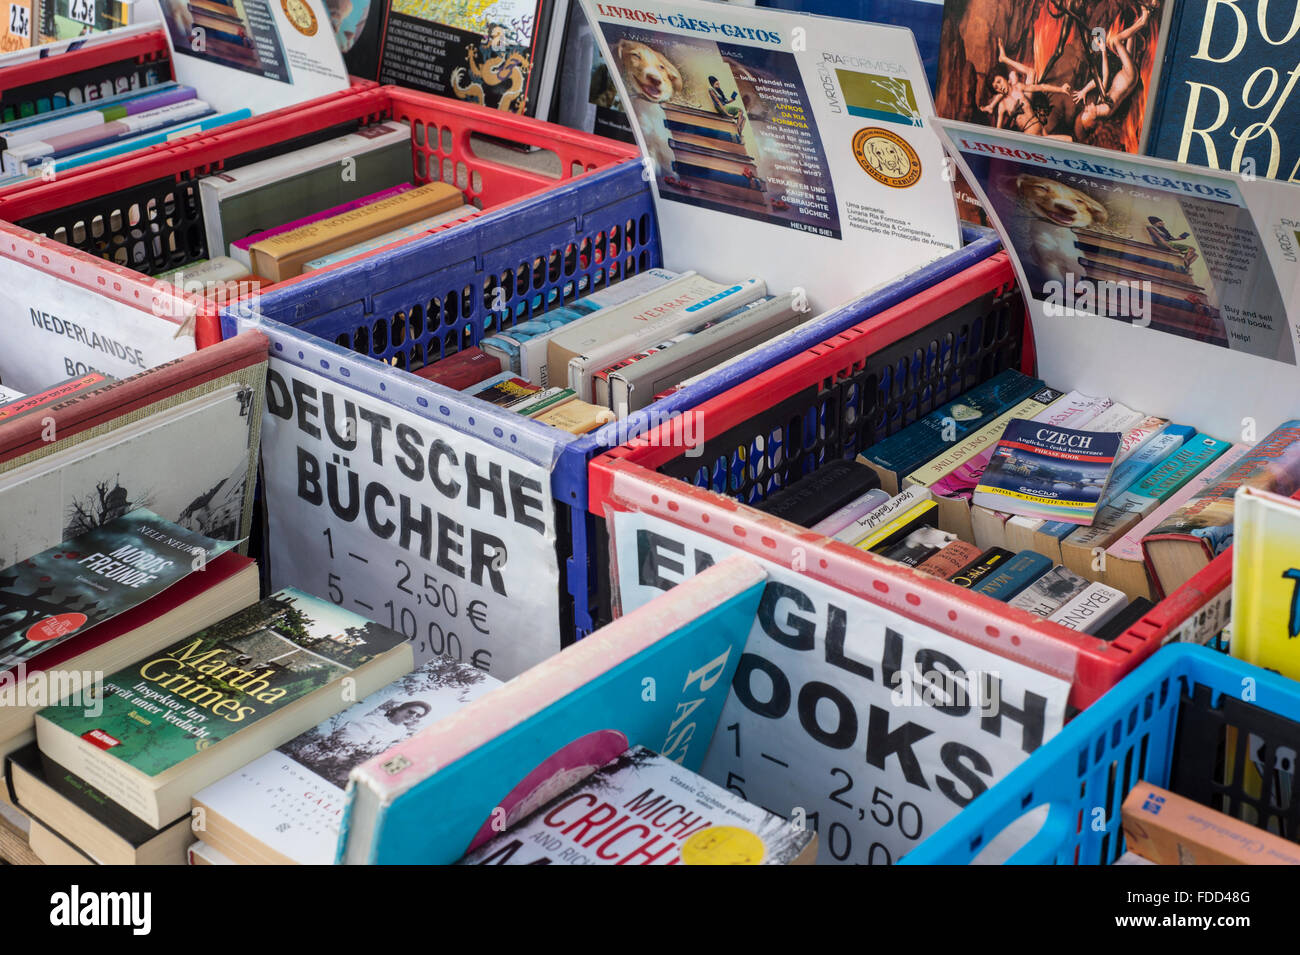 secondhand bookstall with english and german books for sale - Stock Image